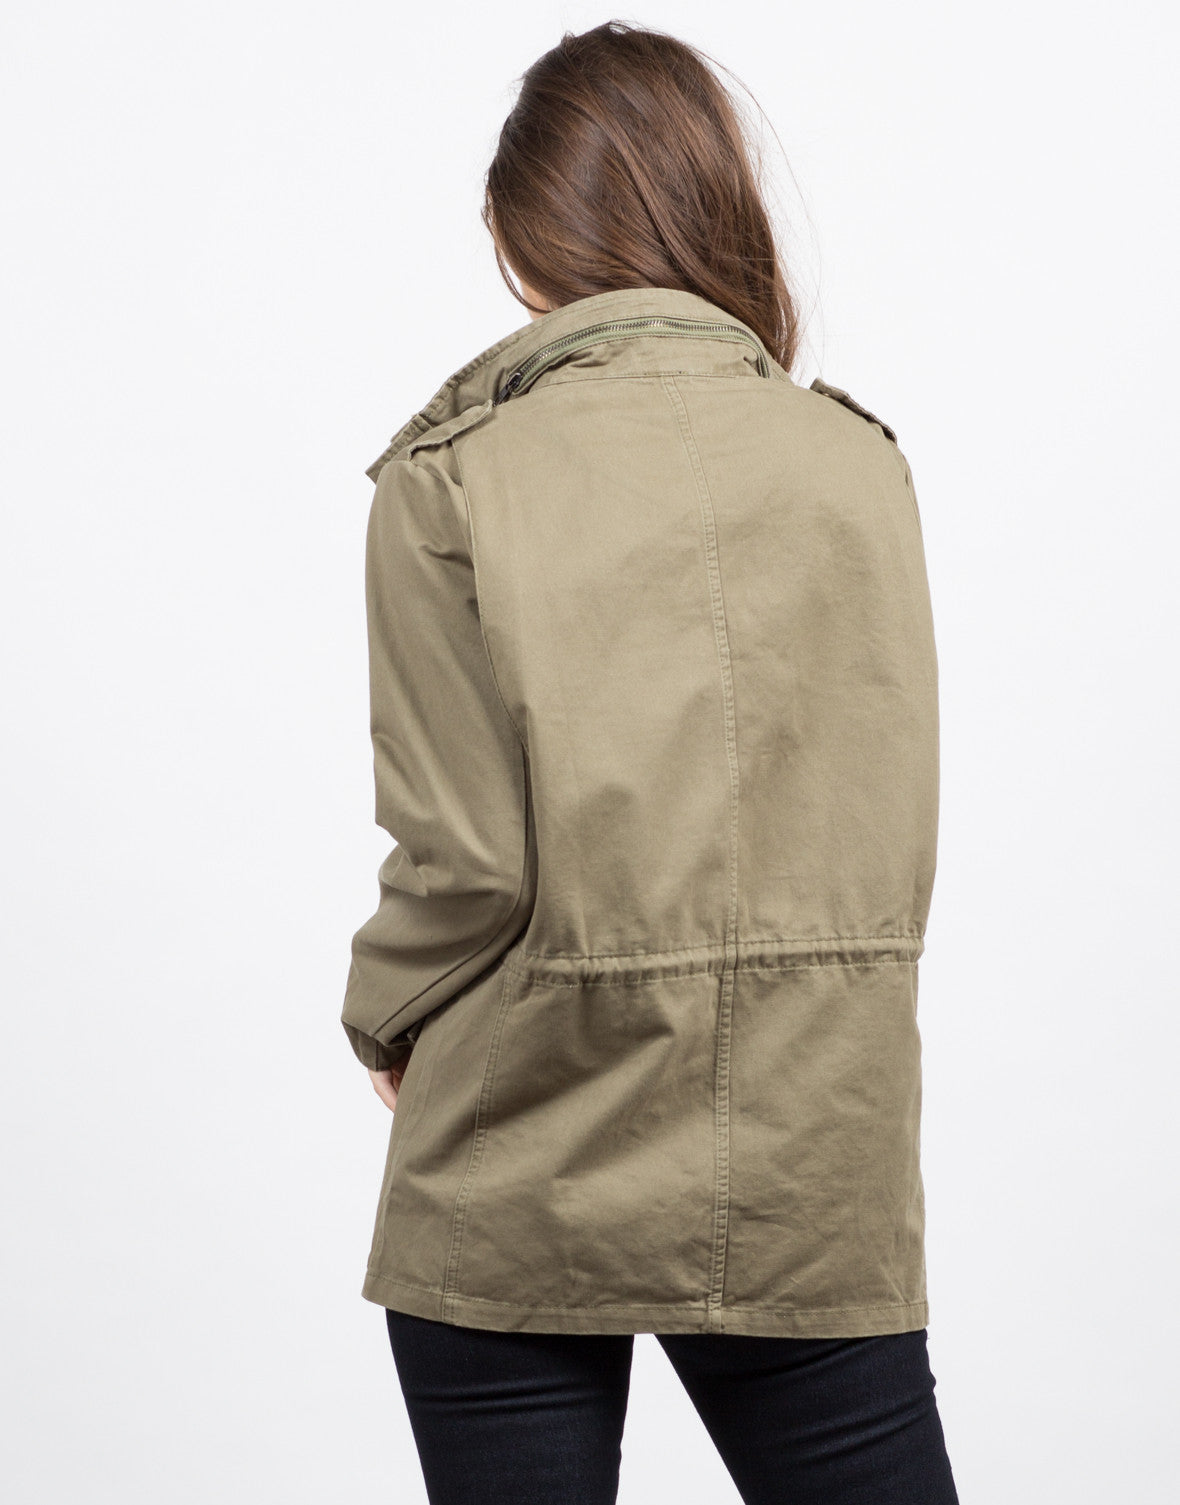 Back View of Military Utility Jacket